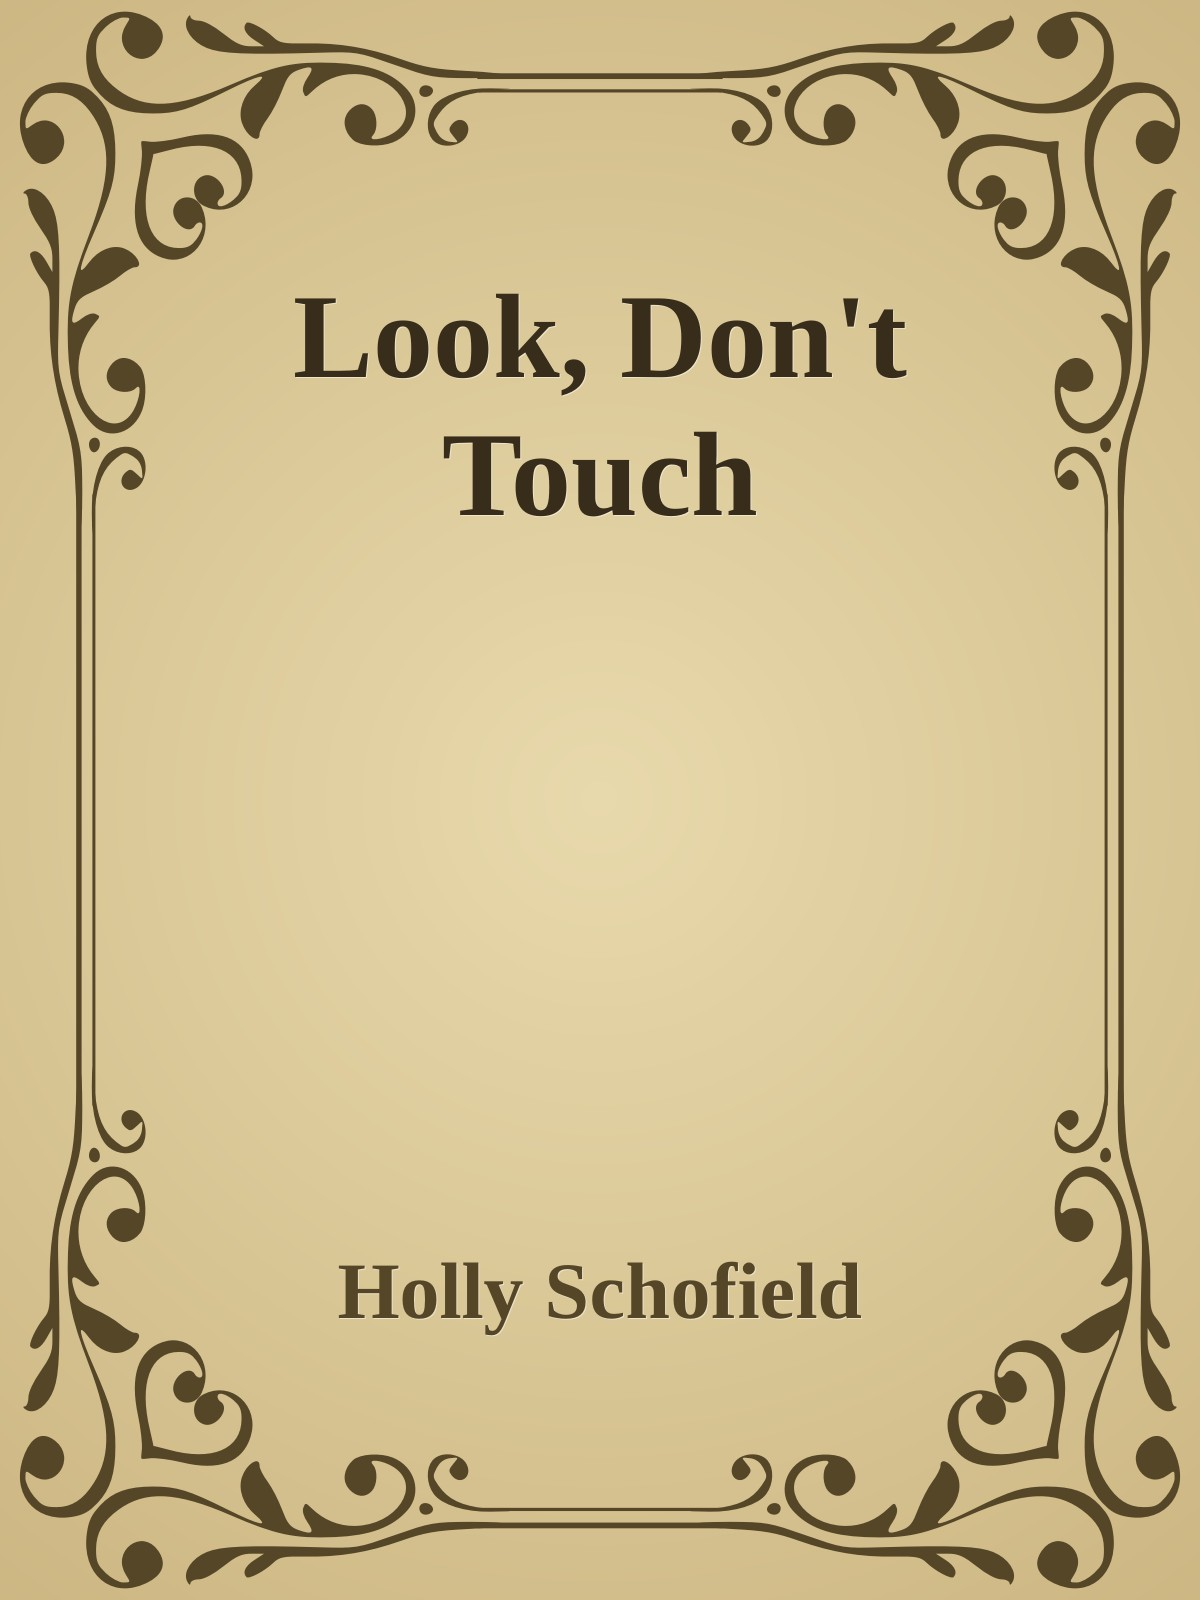 Look, Don't Touch.jpeg